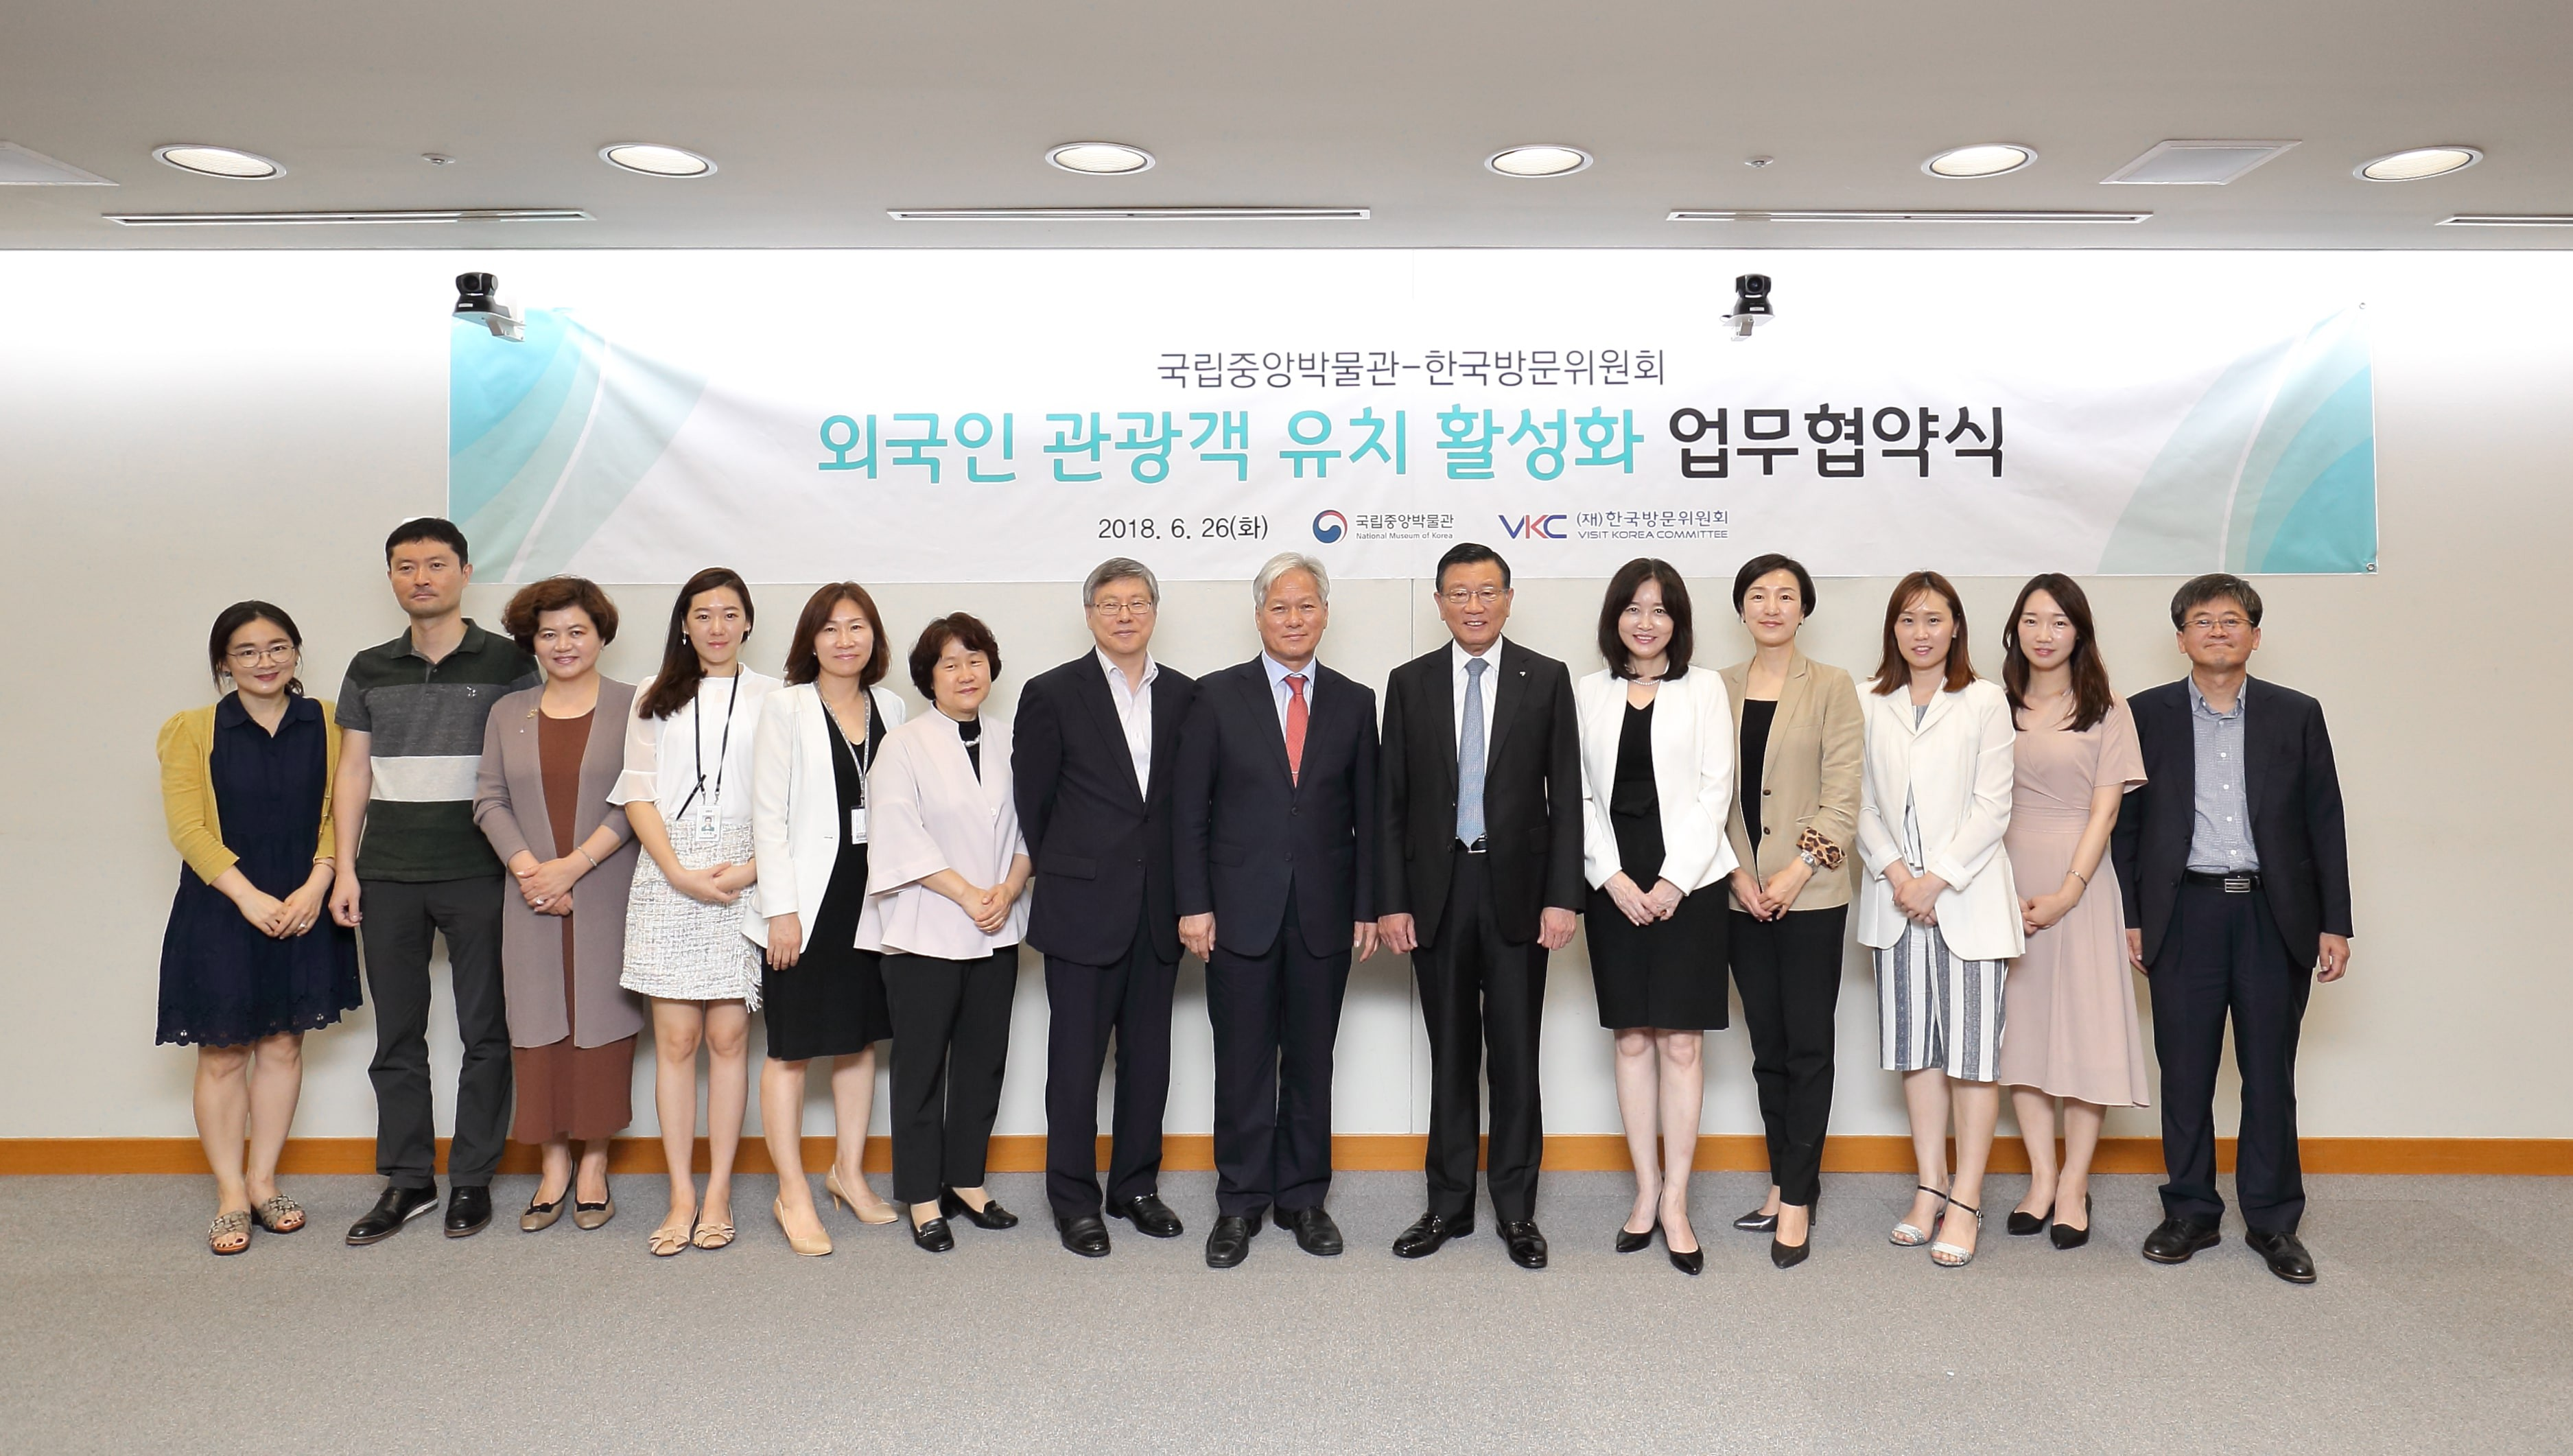 Visit Korea Committee Partners With National Museum of Korea to Attract Foreign Tourists